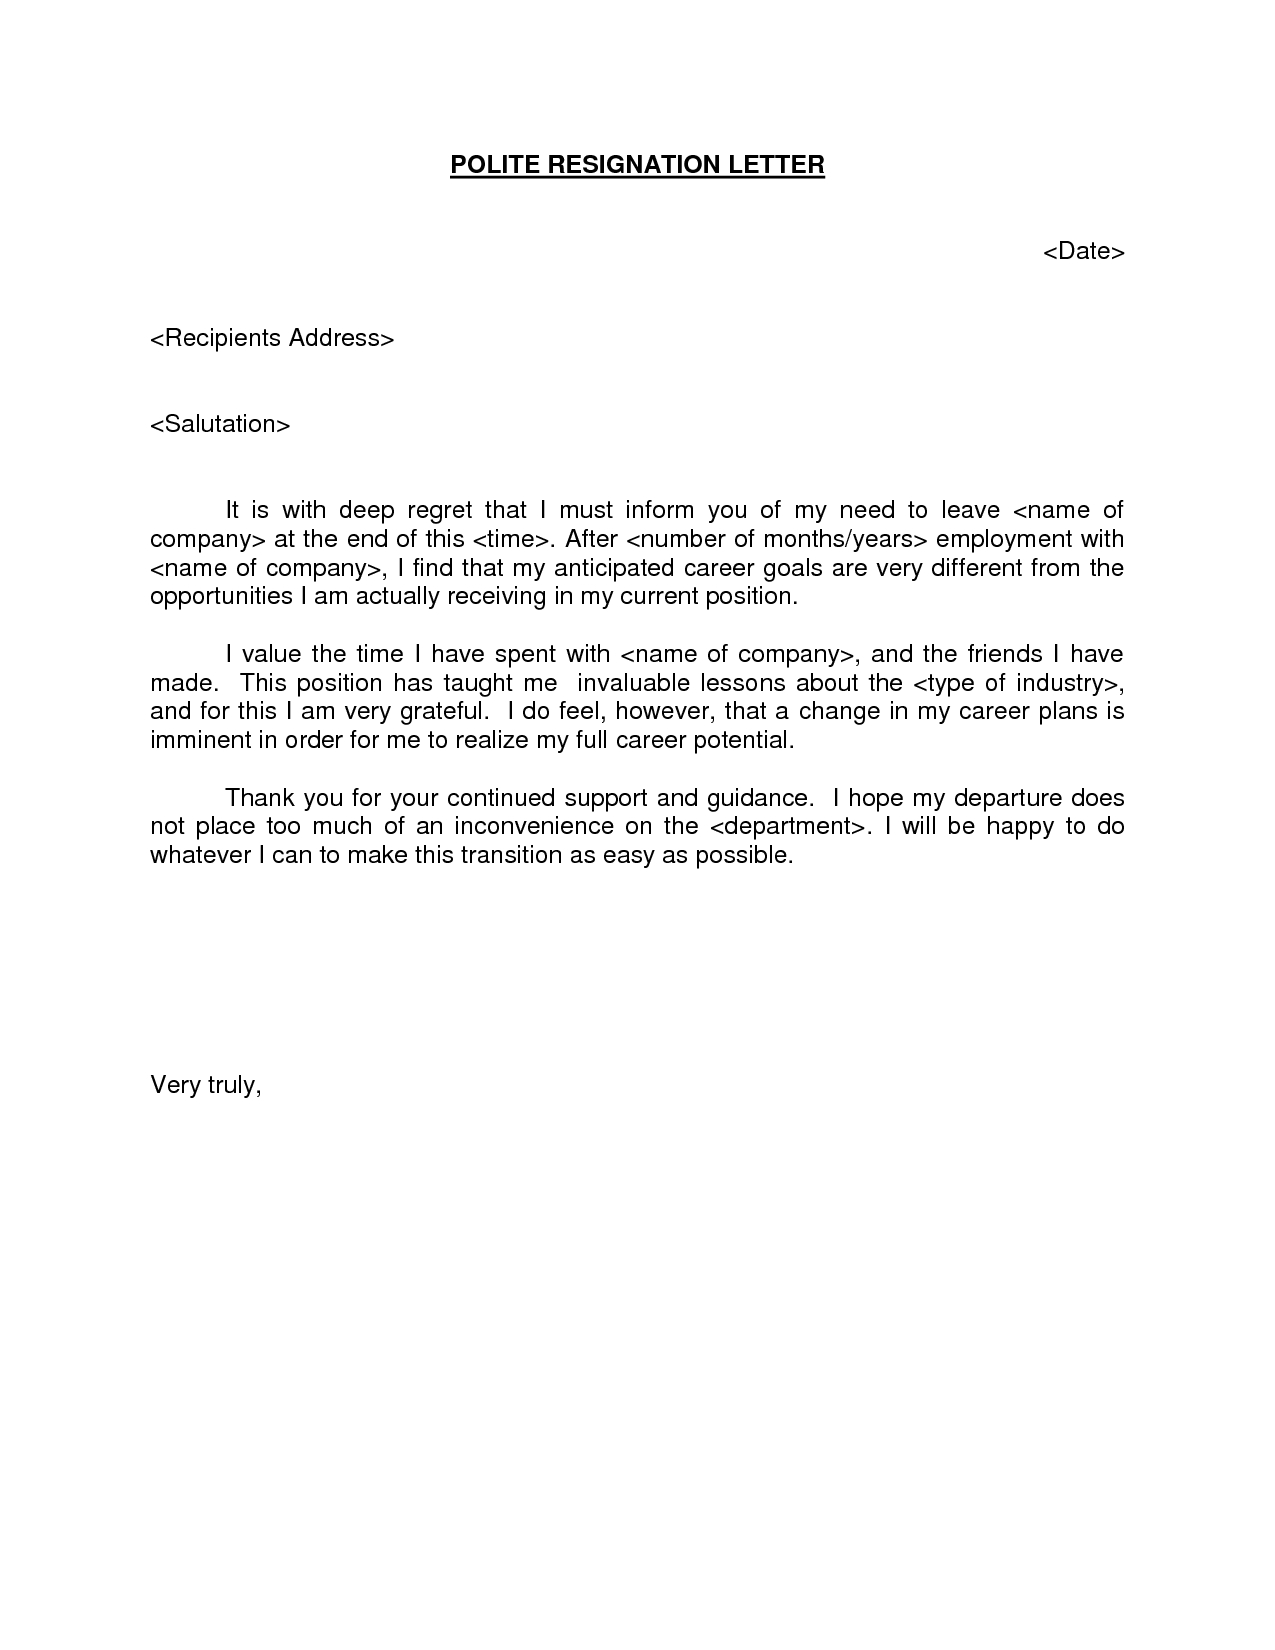 Writing A Letter asking for Donations Template - Polite Resignation Letter Bestdealformoneywriting A Letter